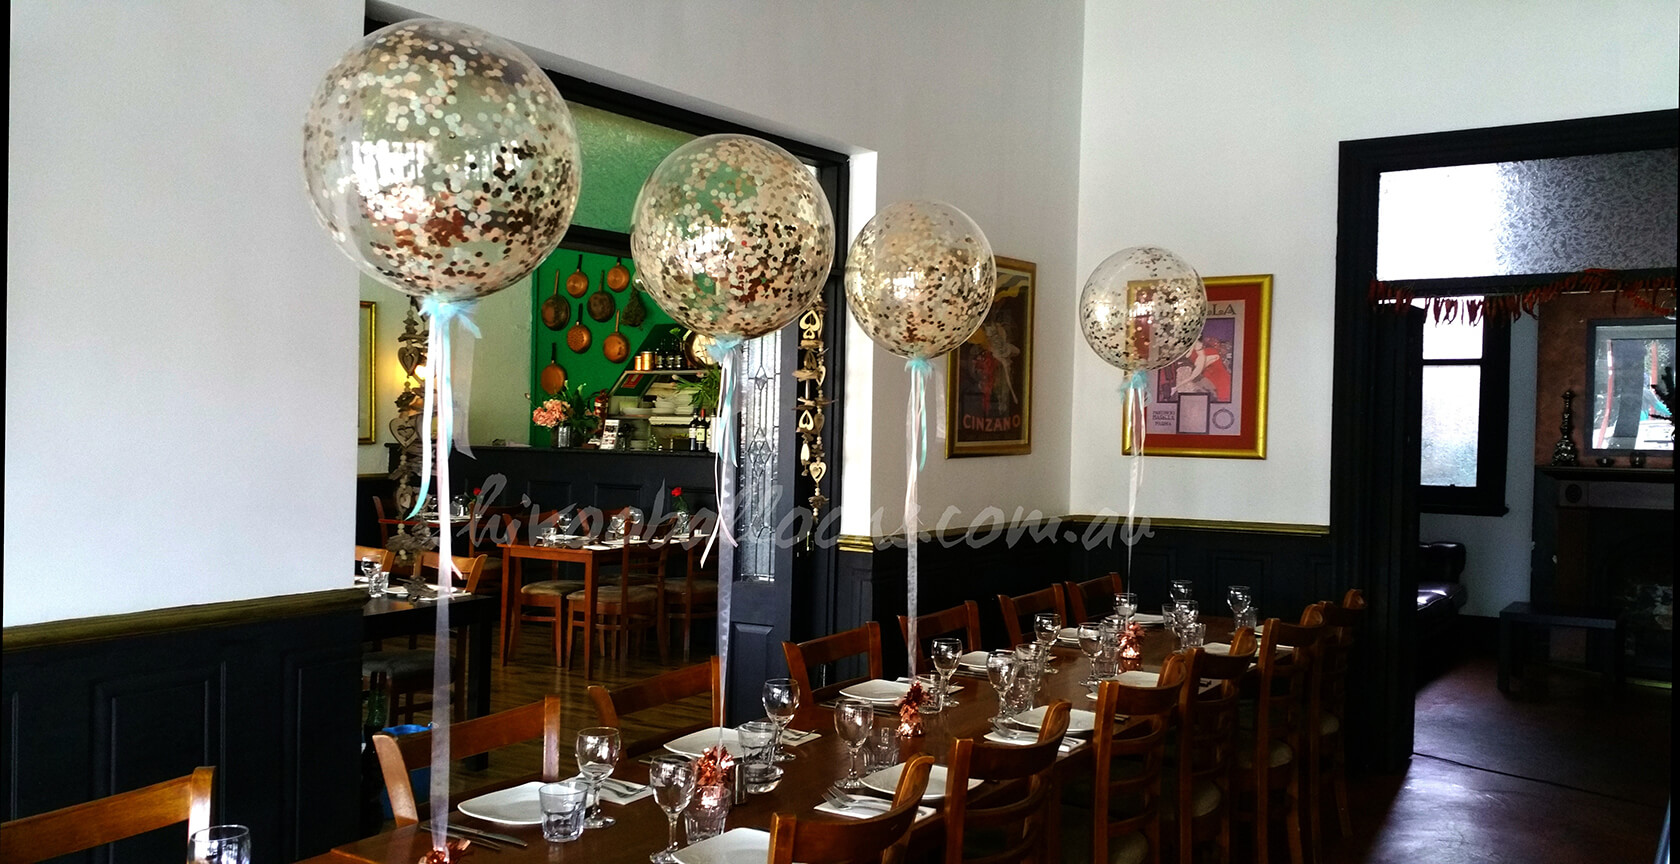 CE-65 - corporate - Organic Balloon private functions decor - shivoo balloons and decor specialists in coburg north